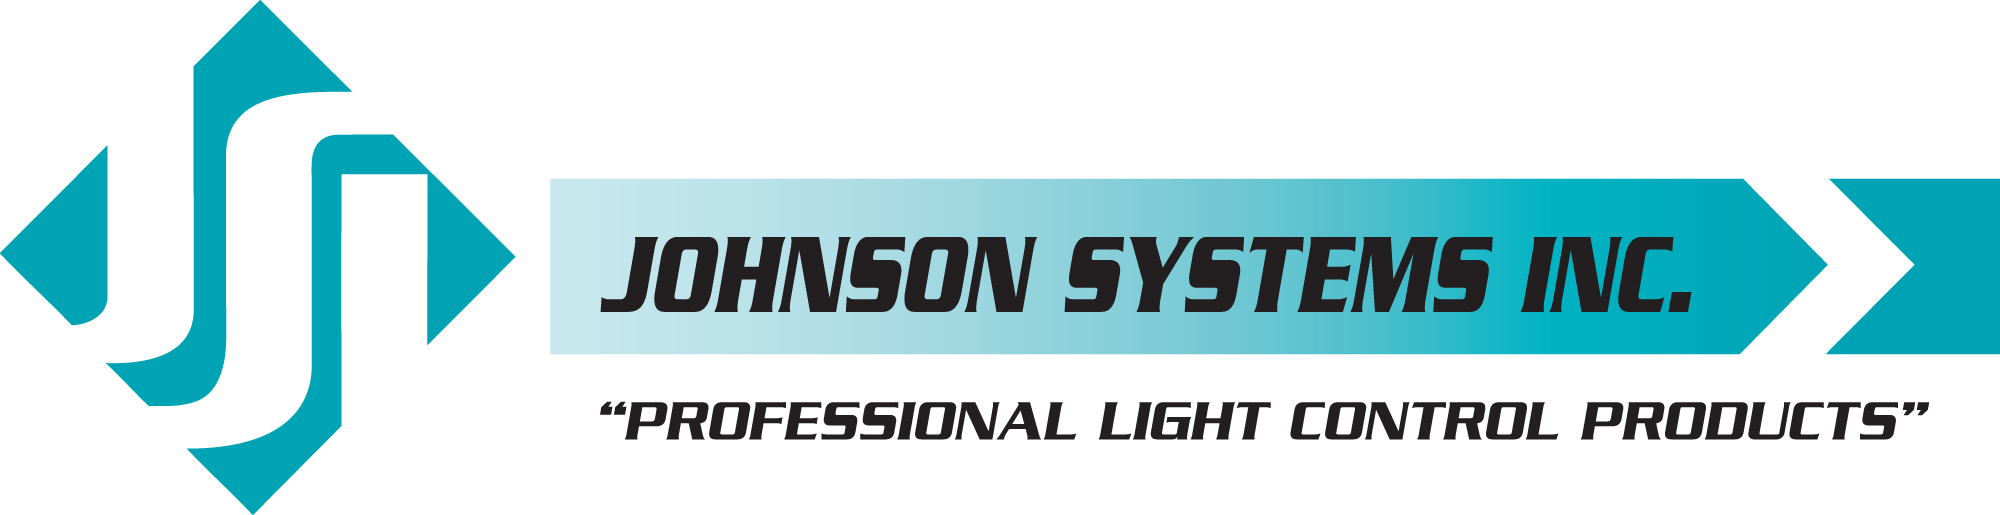 johnson-systems-logo-2017.png